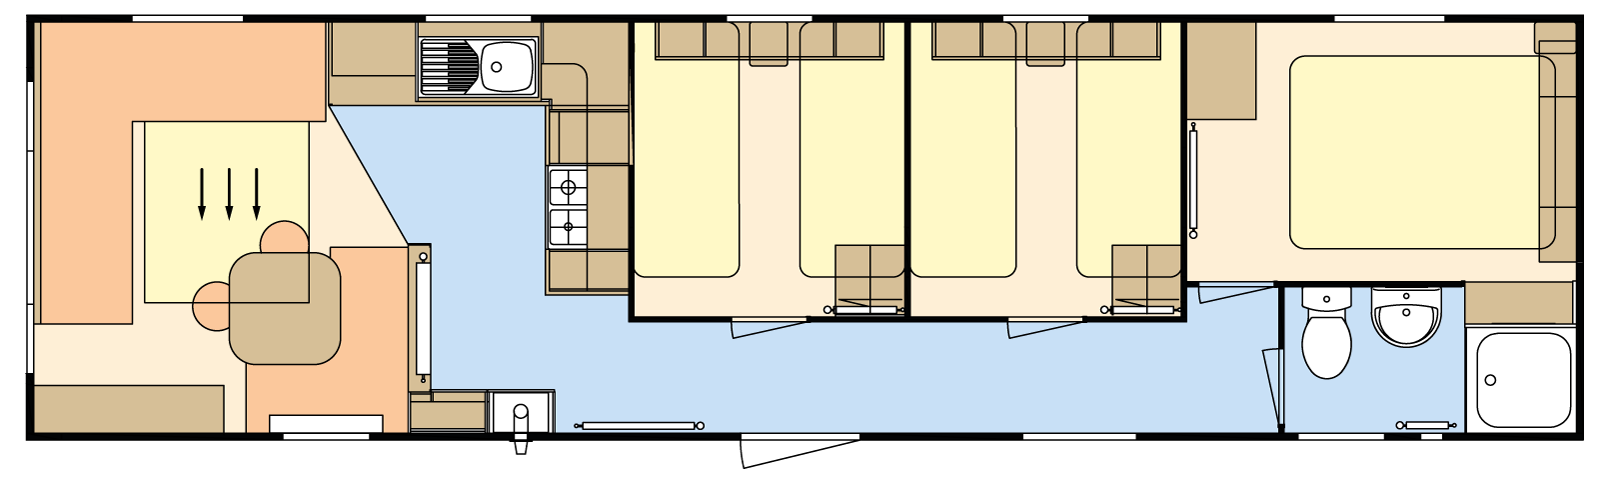 36 × 10 – 3 bedroom/8 berth